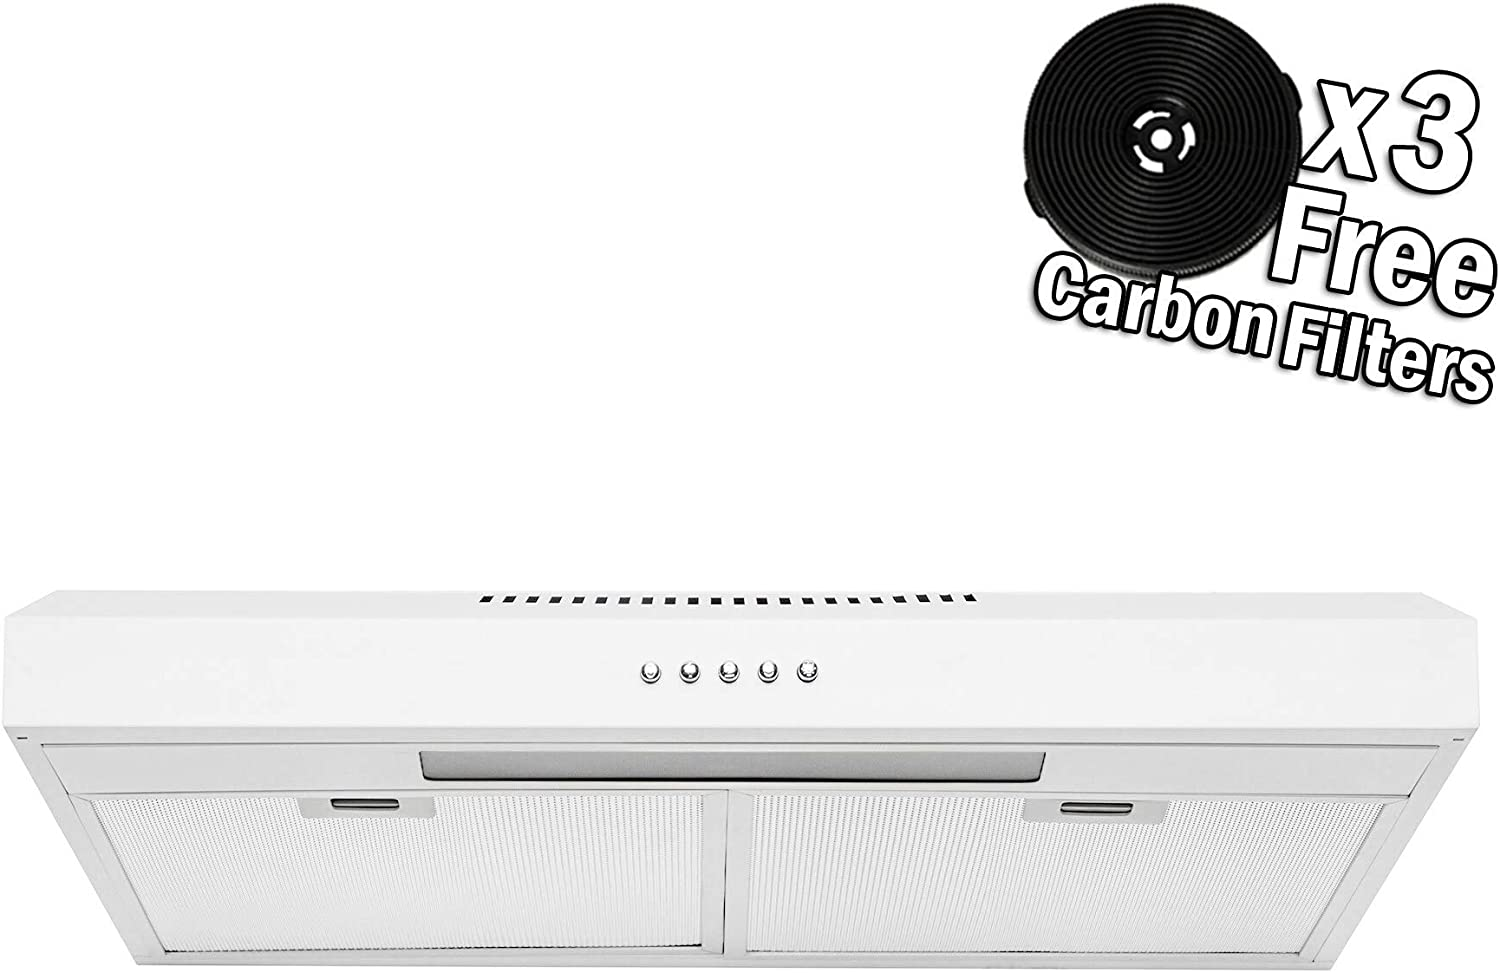 AKDY Under Cabinet Kitchen Range Hood Cooking Fan with Push Panel - Lighting Bar - Carbon Filters (36 in, White Painted Stainless Steel)